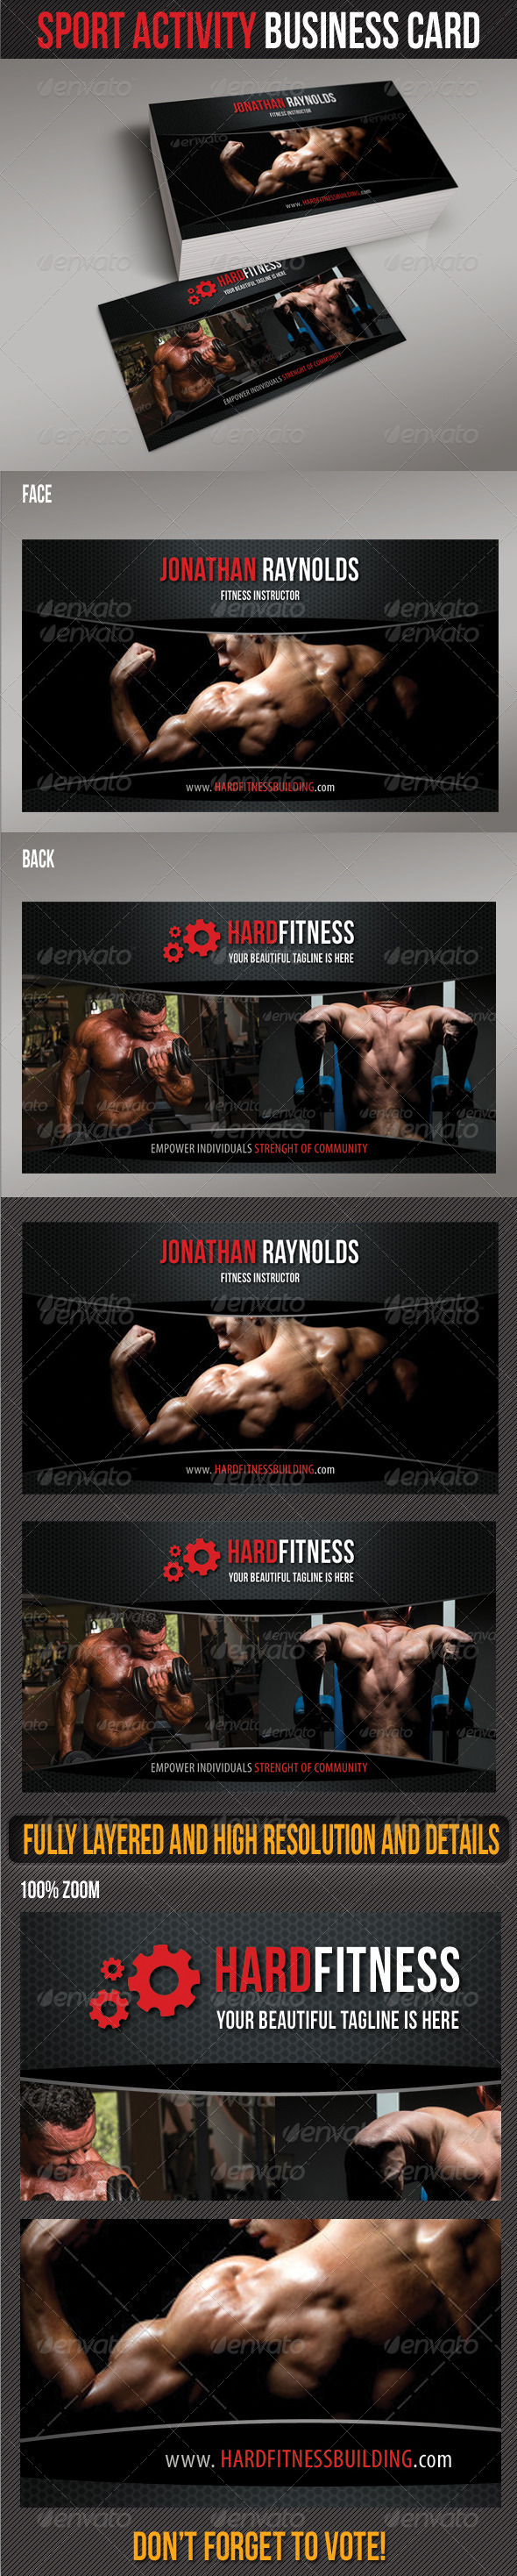 GraphicRiver Sport Activity Business Card 6725259